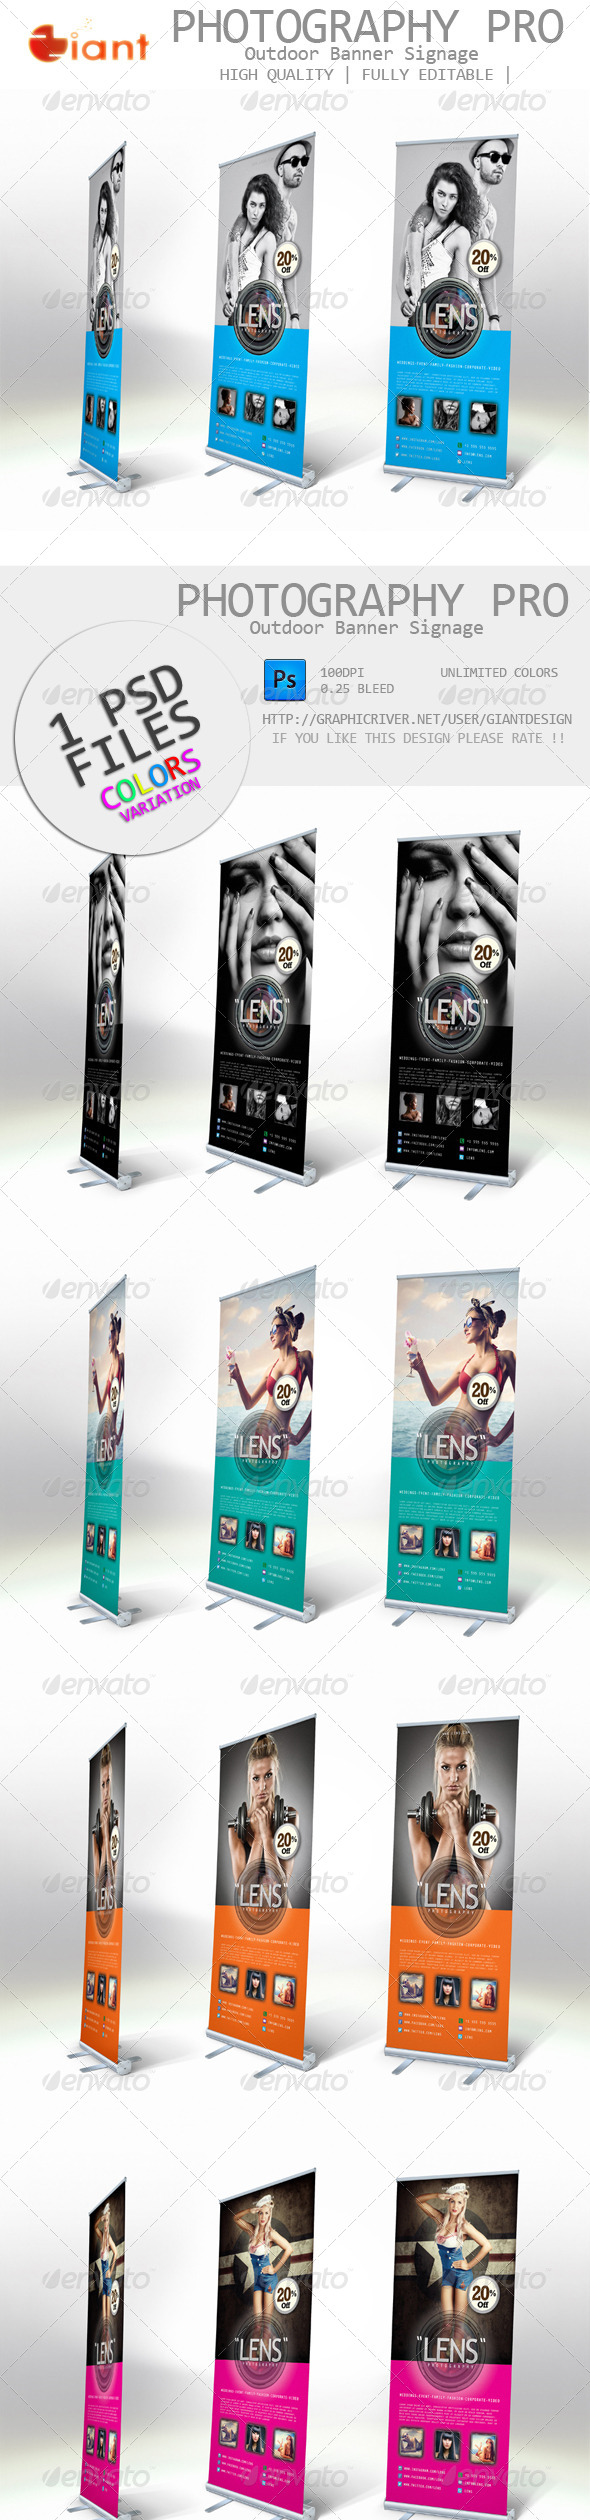 Photography Pro Outdoor Banner Signage - Signage Print Templates